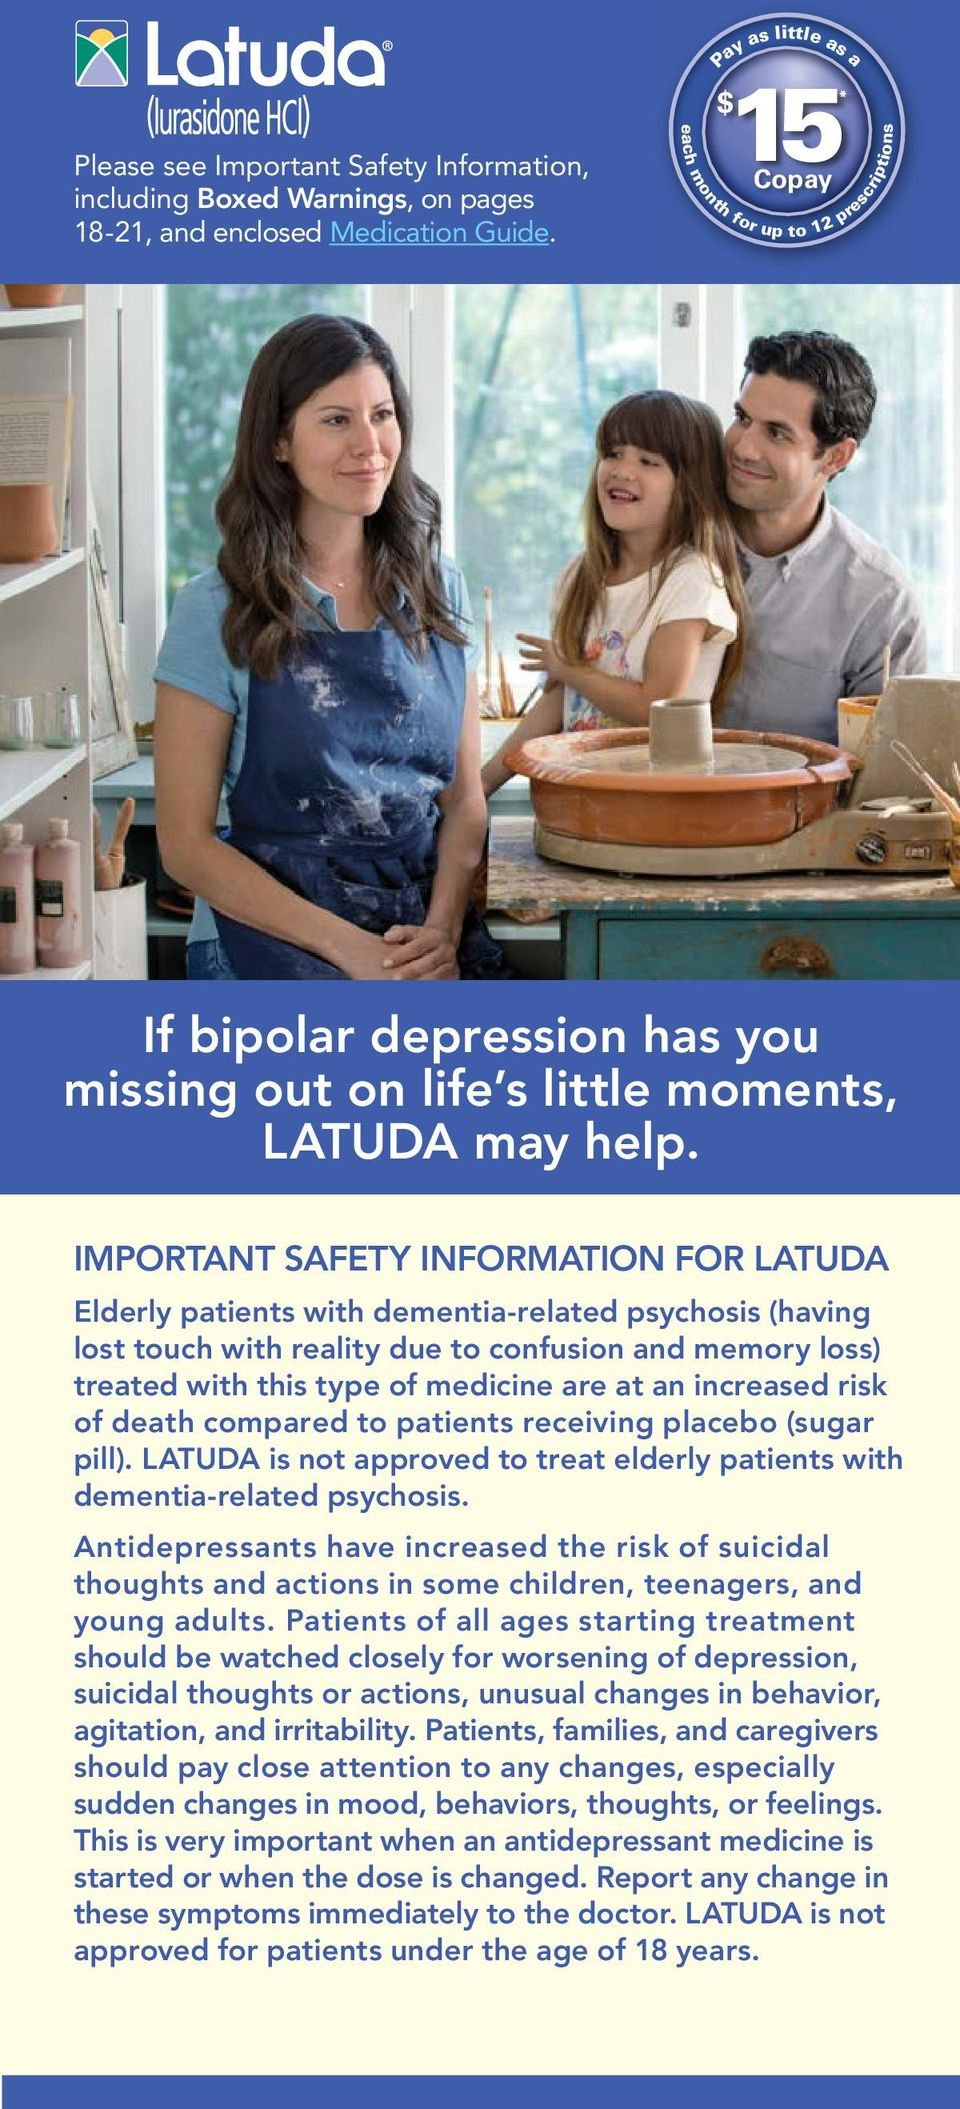 FOR LATUDA Elderly patients with dementia-related psychosis (having lost touch with reality due to confusion and memory loss) treated with this type of medicine are at an increased risk of death